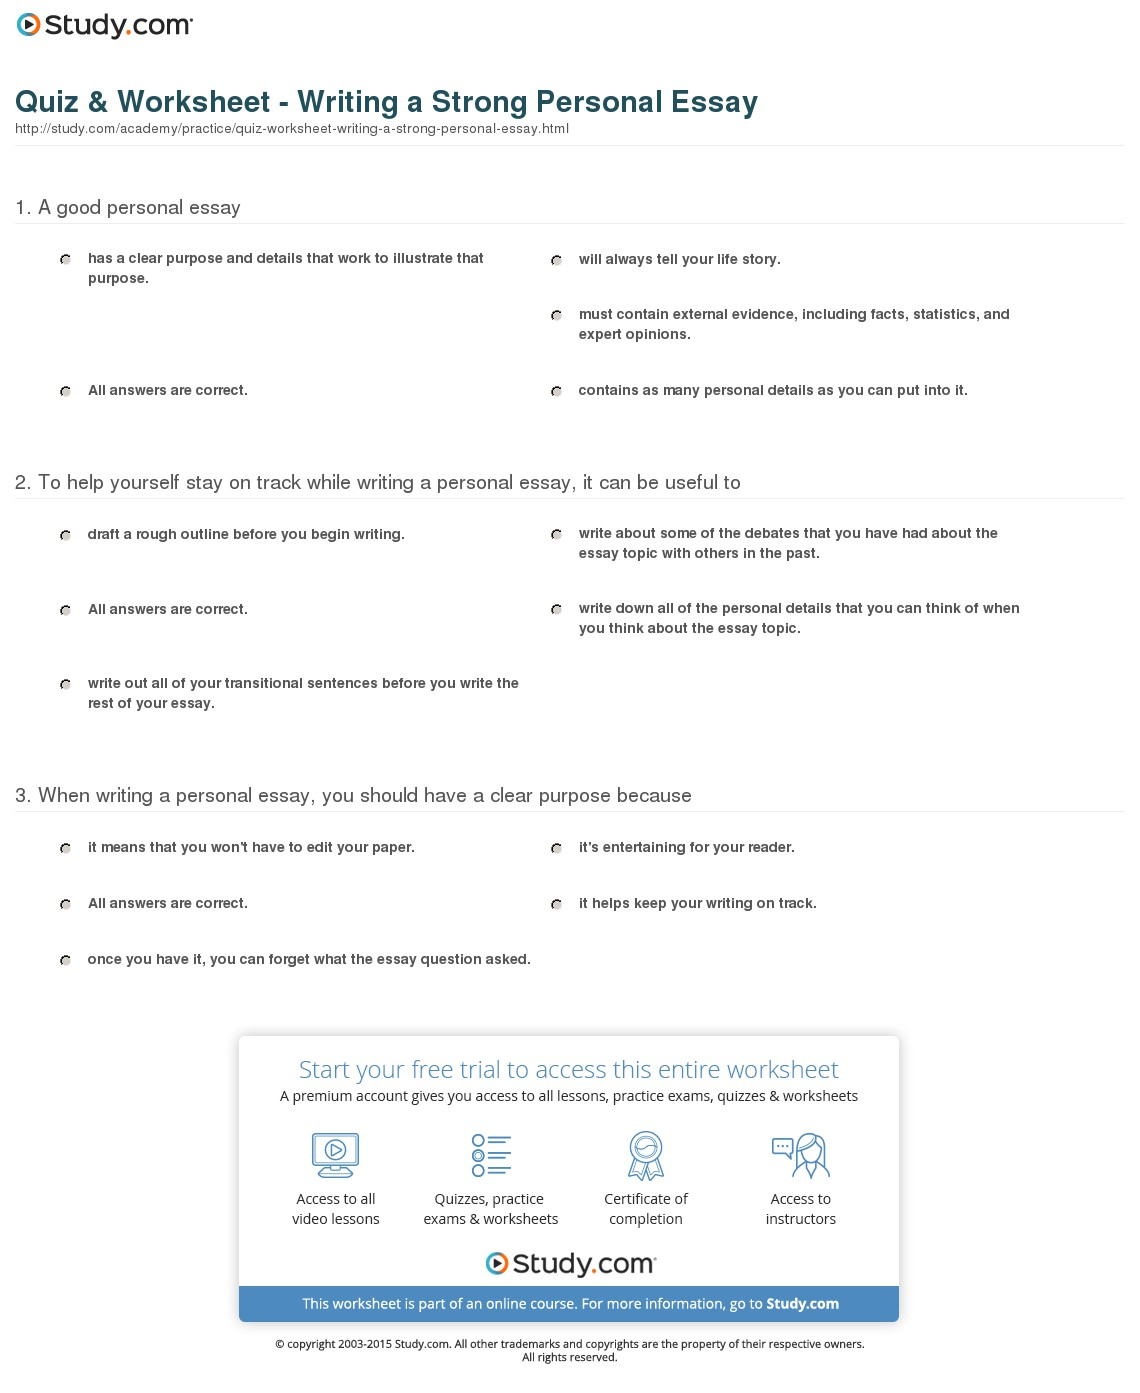 024 Quiz Worksheet Writing Strong Personal Essay What Is The Purpose Of An Wonderful Introduction In Brainly Outline For Argumentative With A Focus On Division-classification Full